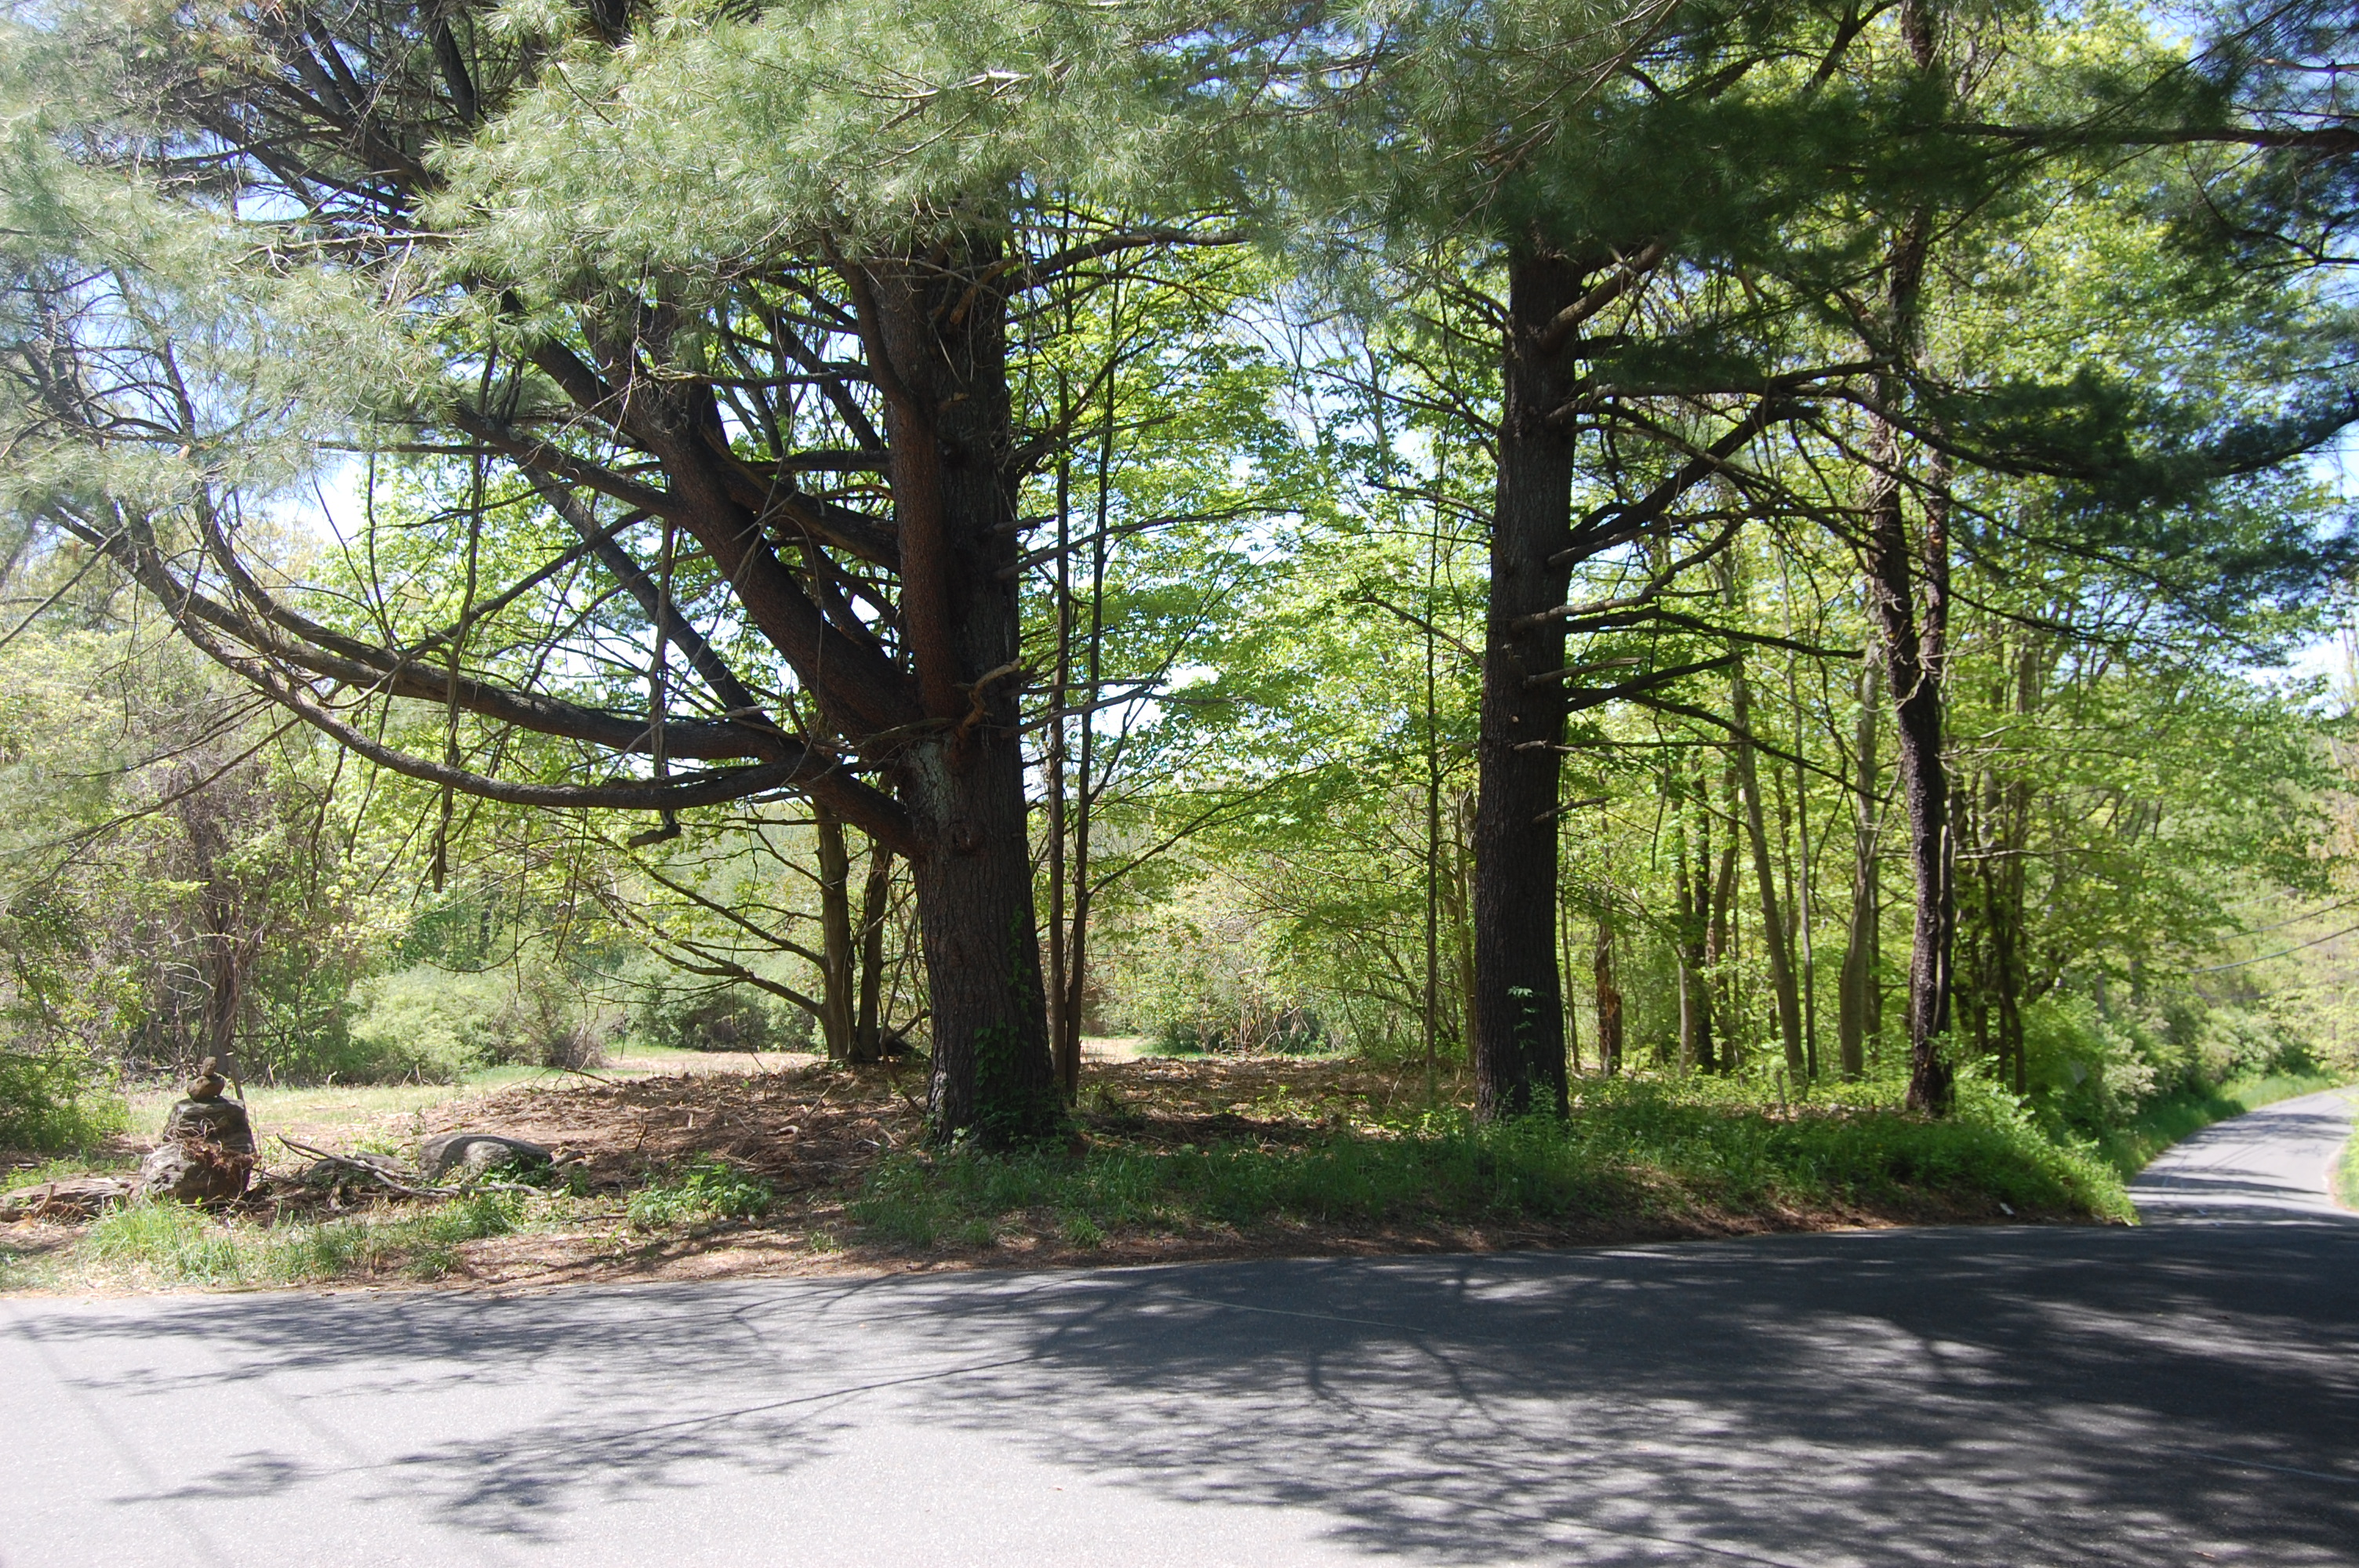 Land for Sale at Superb 8+ Acre Level Land in Estate Area 53 Topstone Road Redding, Connecticut, 06896 United States